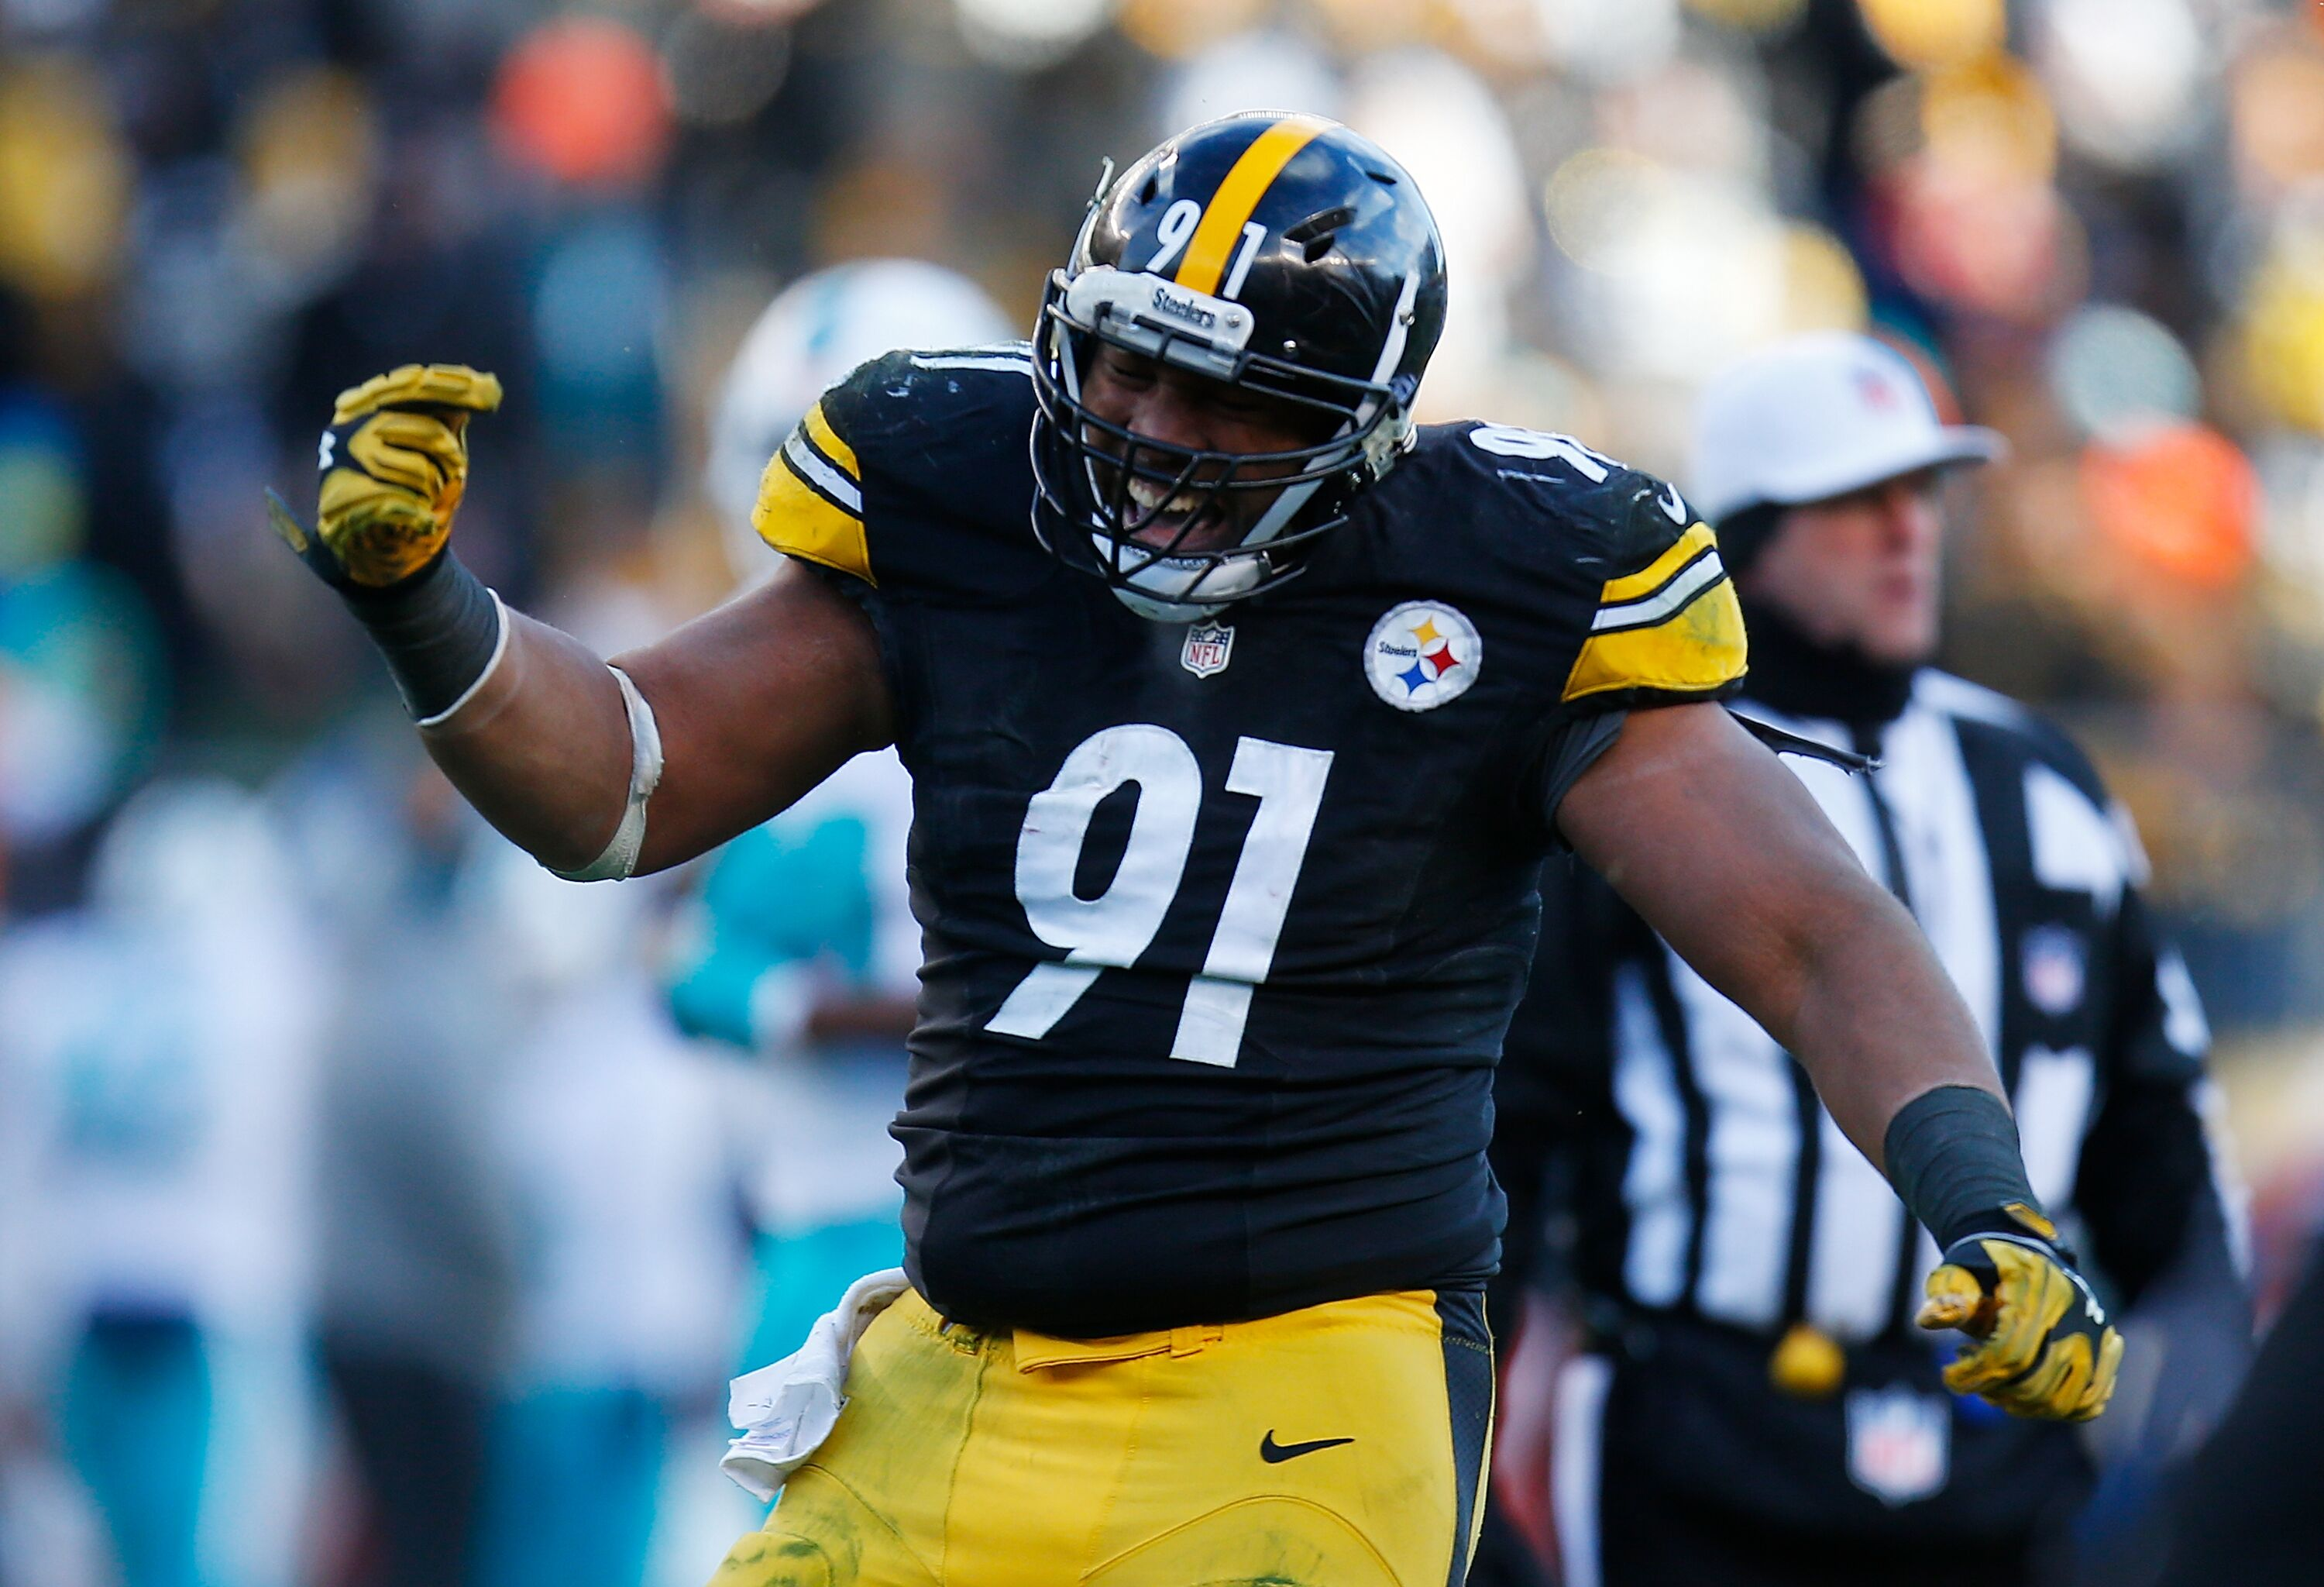 Is Steelers DE Stephon Tuitt underrated or overrated?